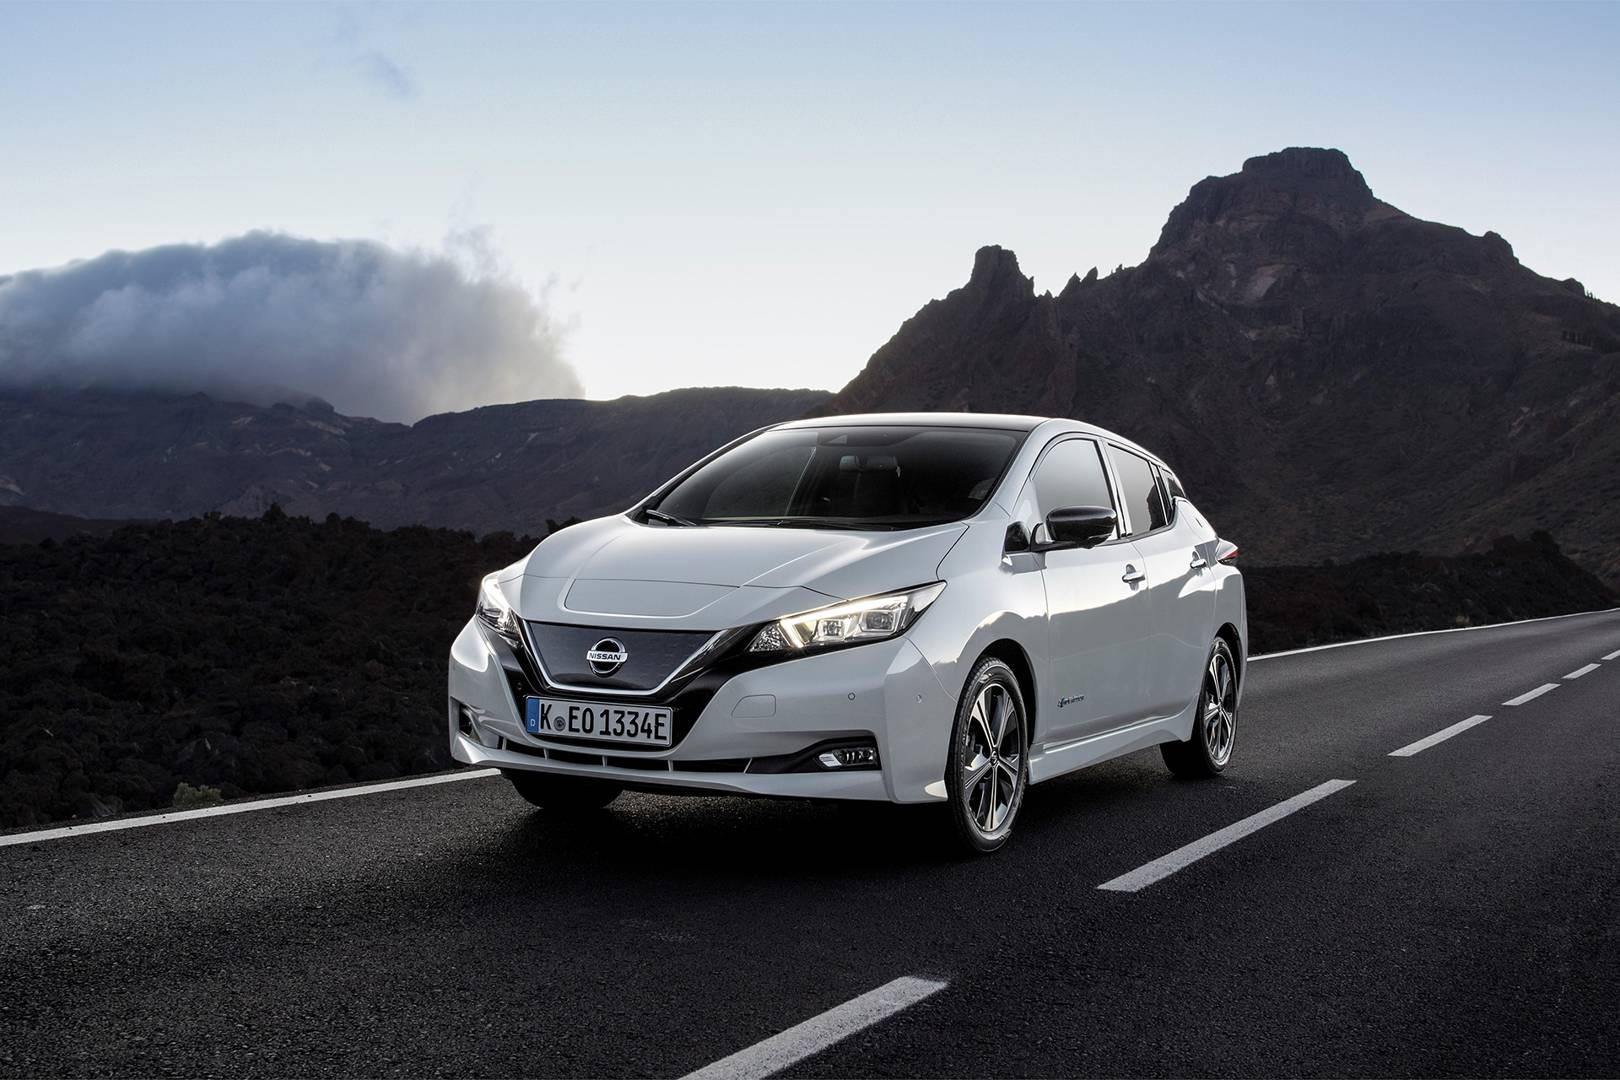 nissan satin a new years for the it leadership also d enhancements with qashqai features inserts crossover is function controller wheel multi of way chrome steering reinforcing display premium four combimeter shaped